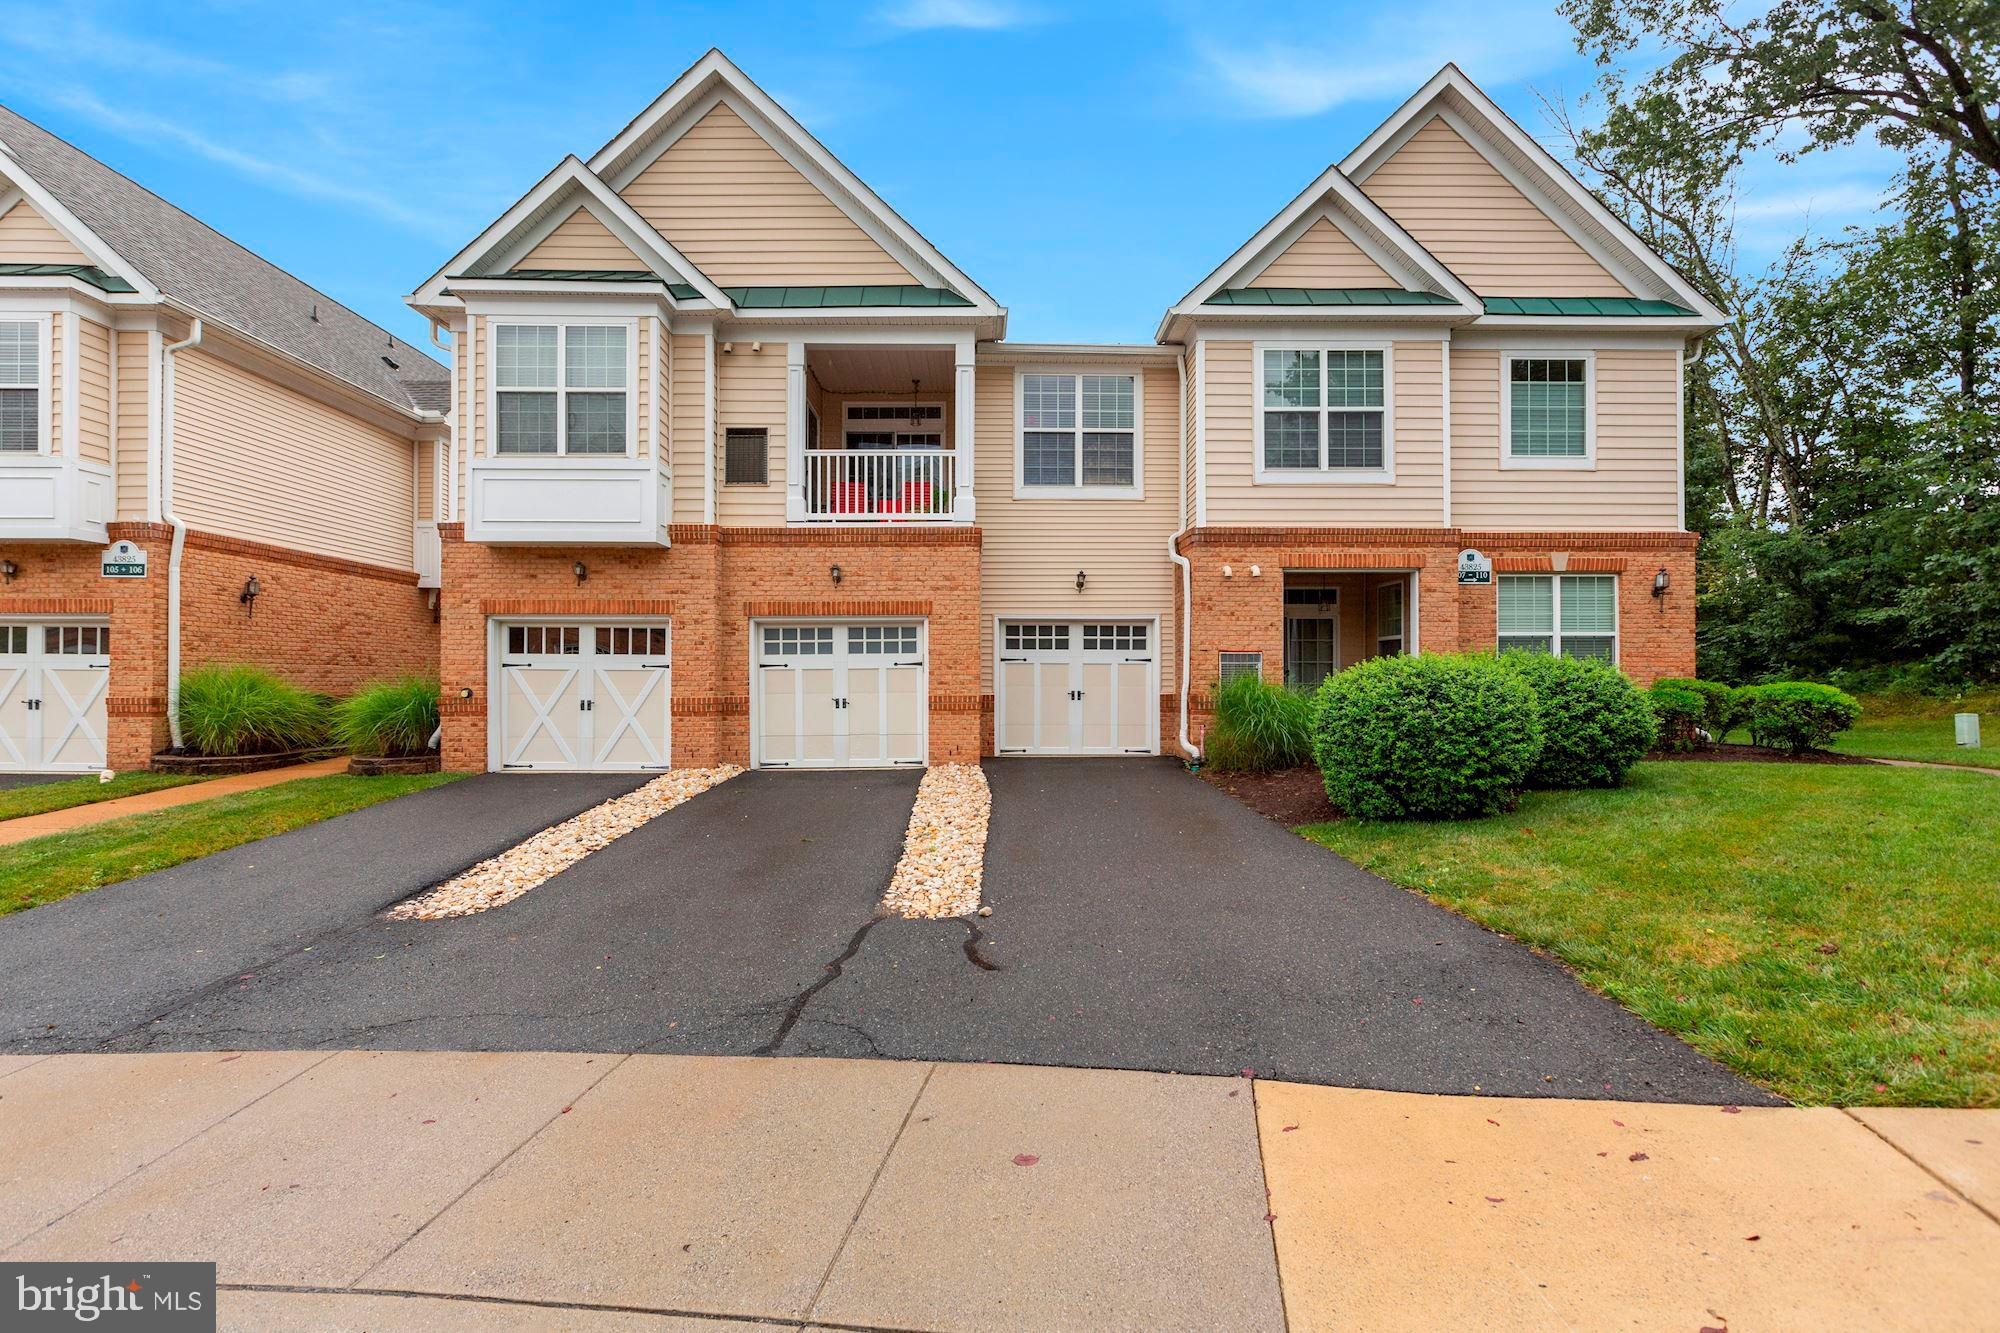 Open House Sunday 8/2/2020 1-3 p.m. Gorgeous Belmont Country Club Condo-Amazing Location Seconds to Whole Foods and Acclaimed Restaurants-1/4 Mile from Route 7 and Only 15 Minutes to Reston and 10 Minutes to Dulles Airport-Ideal Location in The Neighborhood Backing to Trees-The Property Has Been Lovingly Maintained and Updated with Brand New Flooring Throughout-Freshly Painted-Updated Lighting Fixtures-Recently Updated Stainless Steel Appliances- New Hot Water Heater- Fireplace in The Family Room-Generous Sized Owner's Suite with Two Large Closets-Huge Mudroom Off the Over-Sized Garage-Extra Long Driveway for Ample Parking-Condo Fee Includes Cable TV, High Speed Internet, Phone, Water, Sewer and Country Club Amenities-This Property Will Not Disappoint!